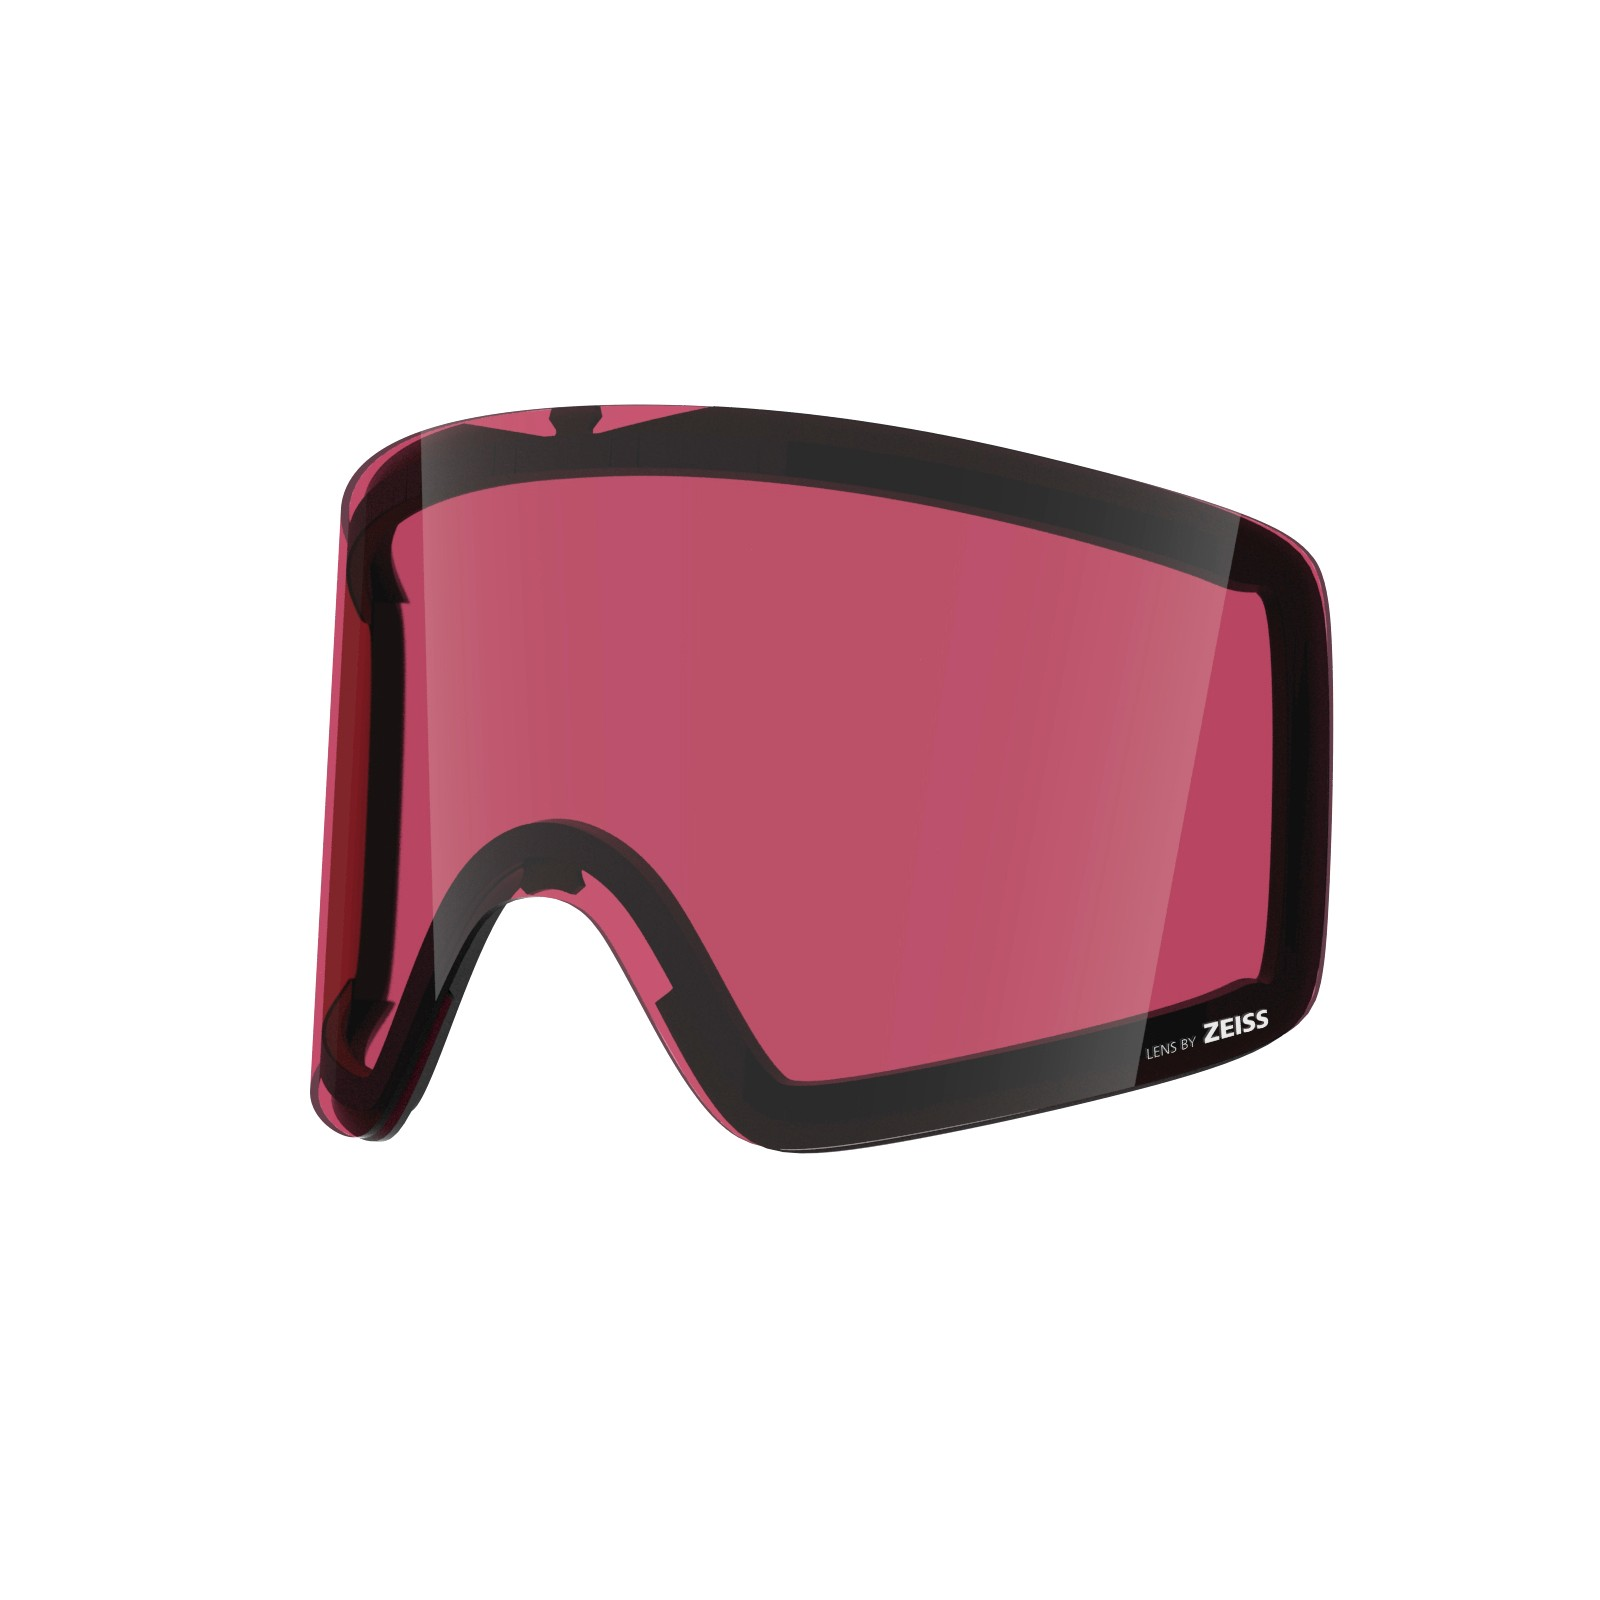 Storm lens for  Void goggle